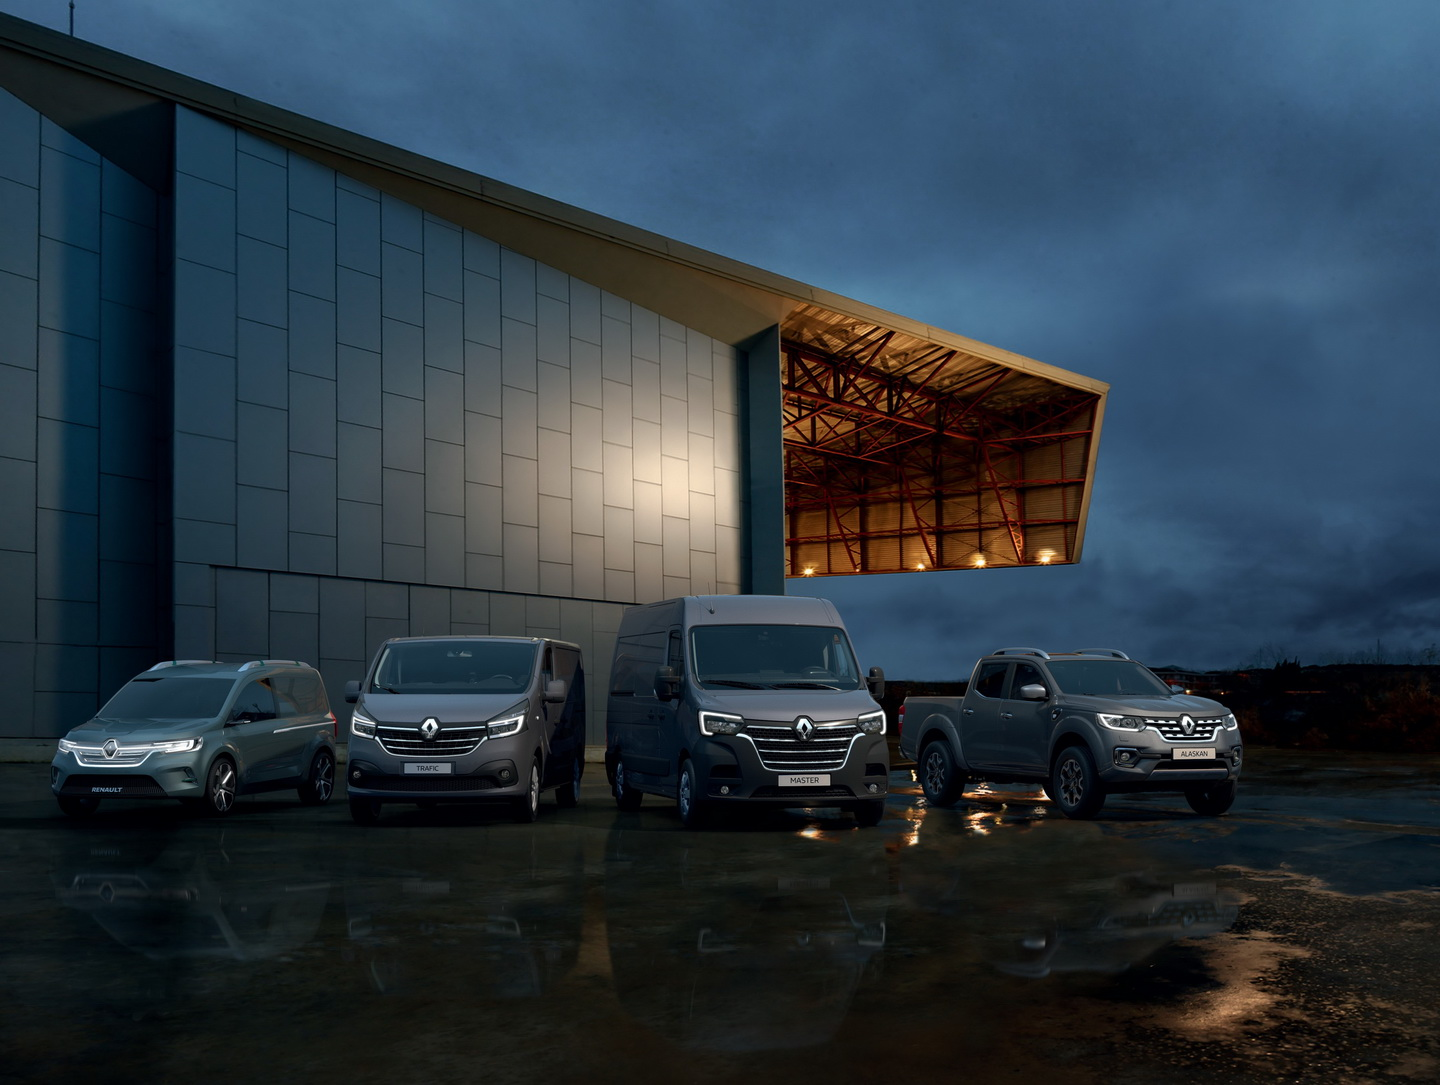 New 2019 Renault Trafic facelift 19